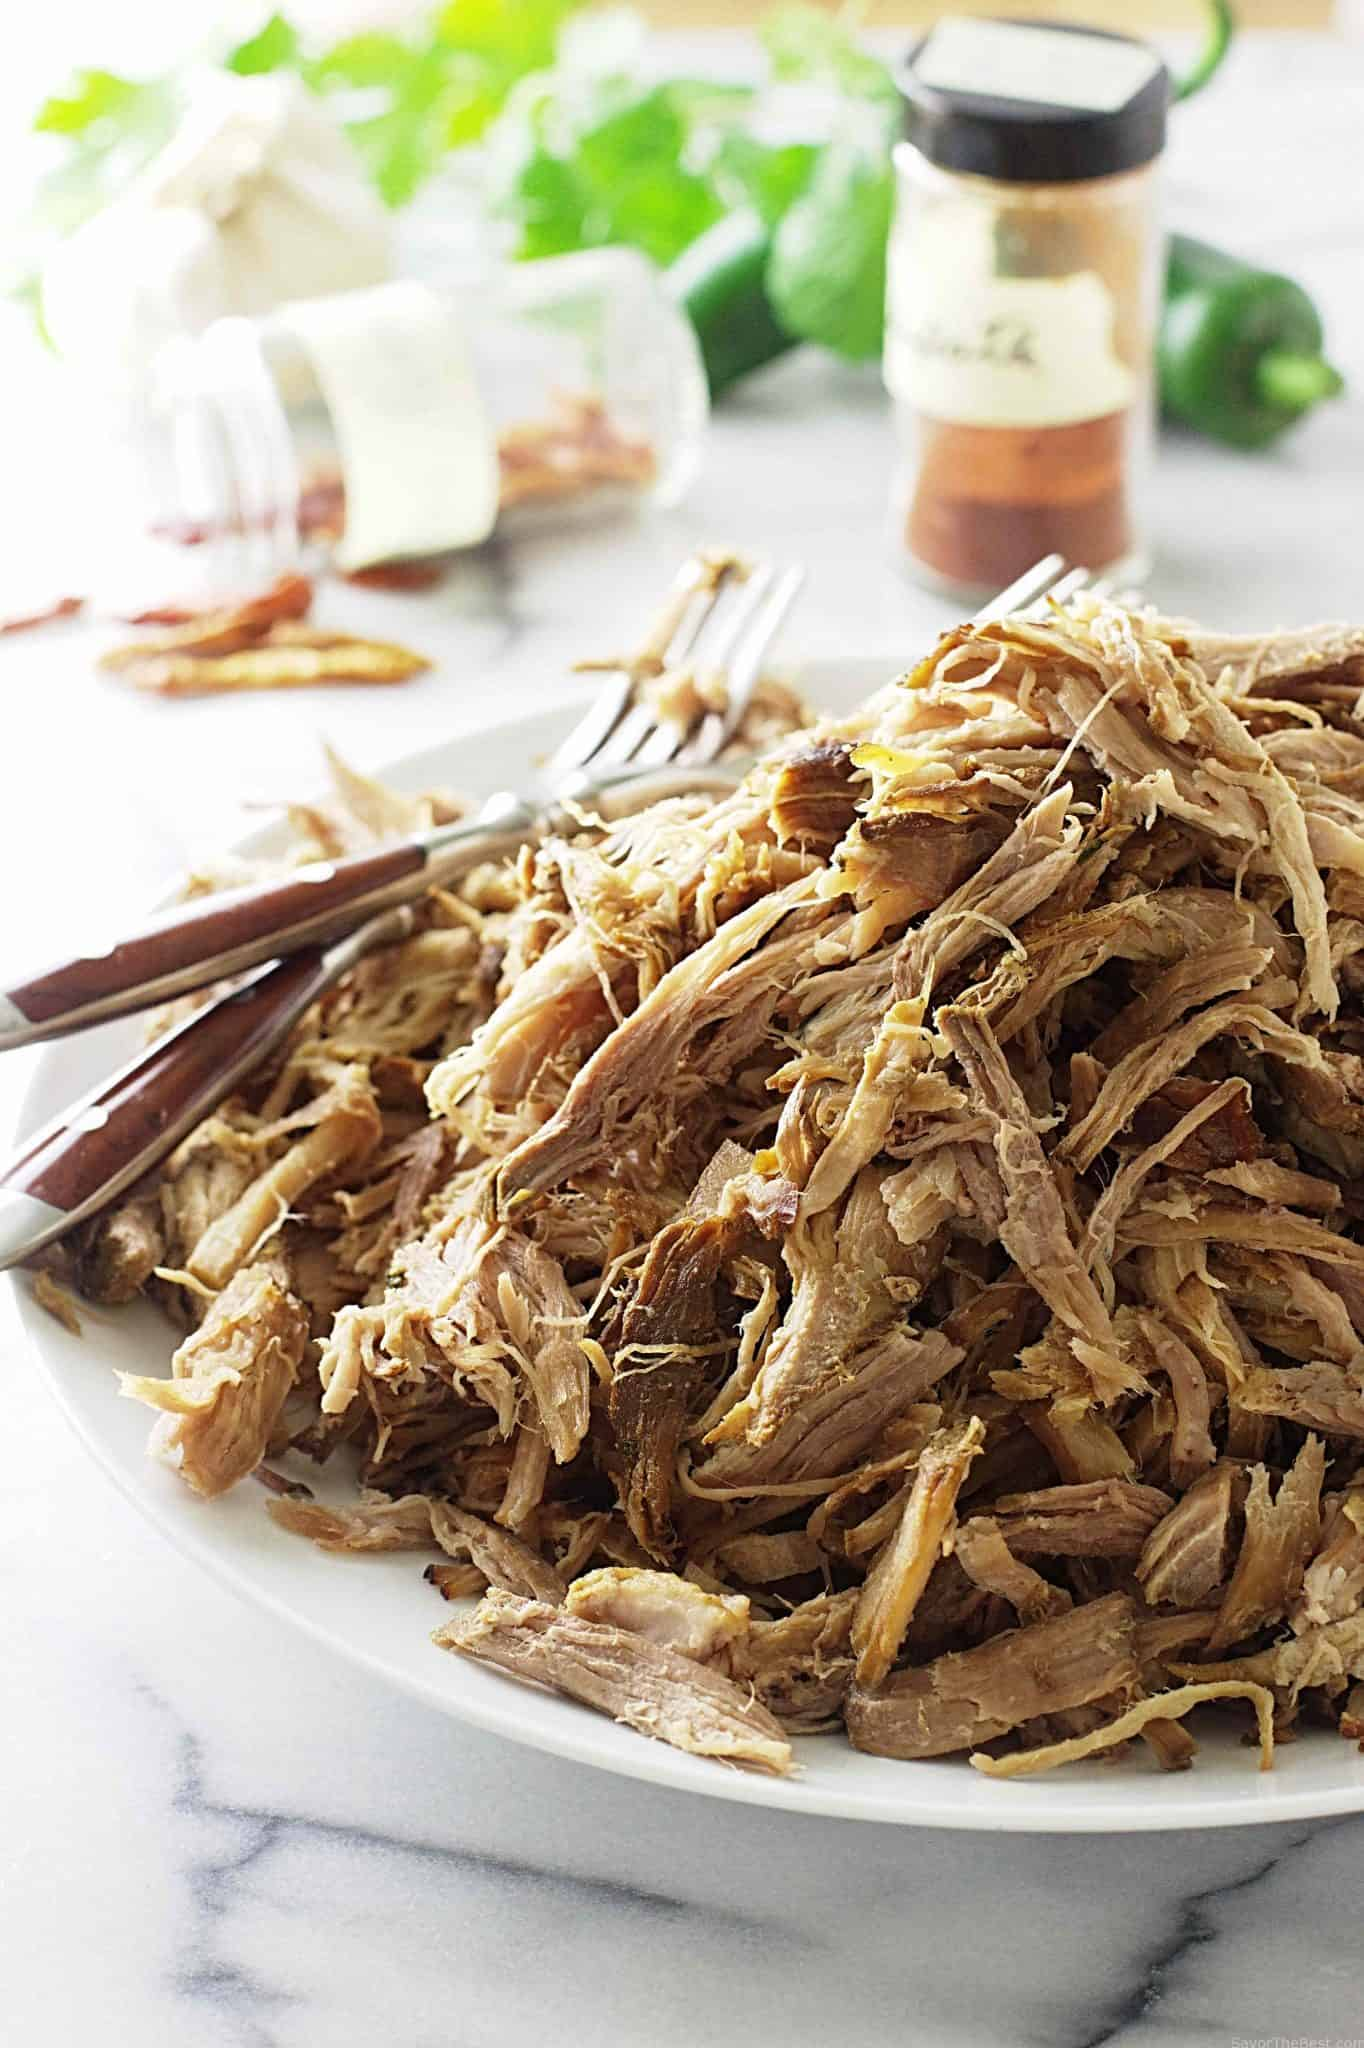 Chipotle Pulled Pork